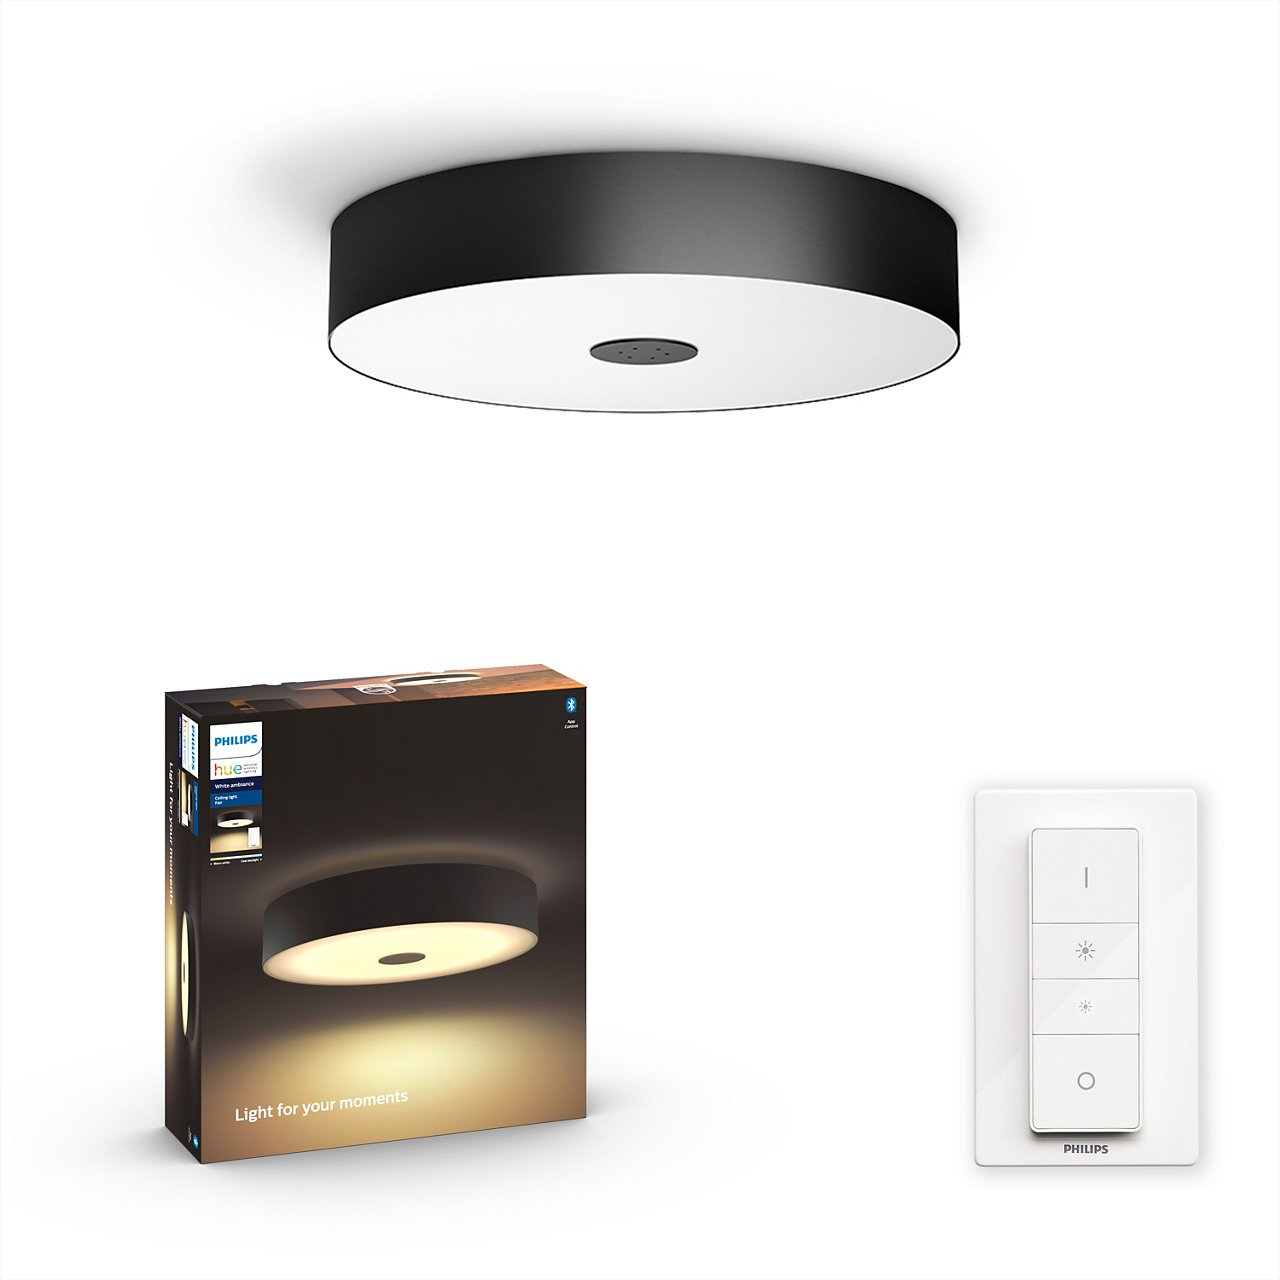 Philips Hue - Fair Hue ceiling lamp black 1x39W 24V - White Ambiance - Bluetooth Included Dimmer